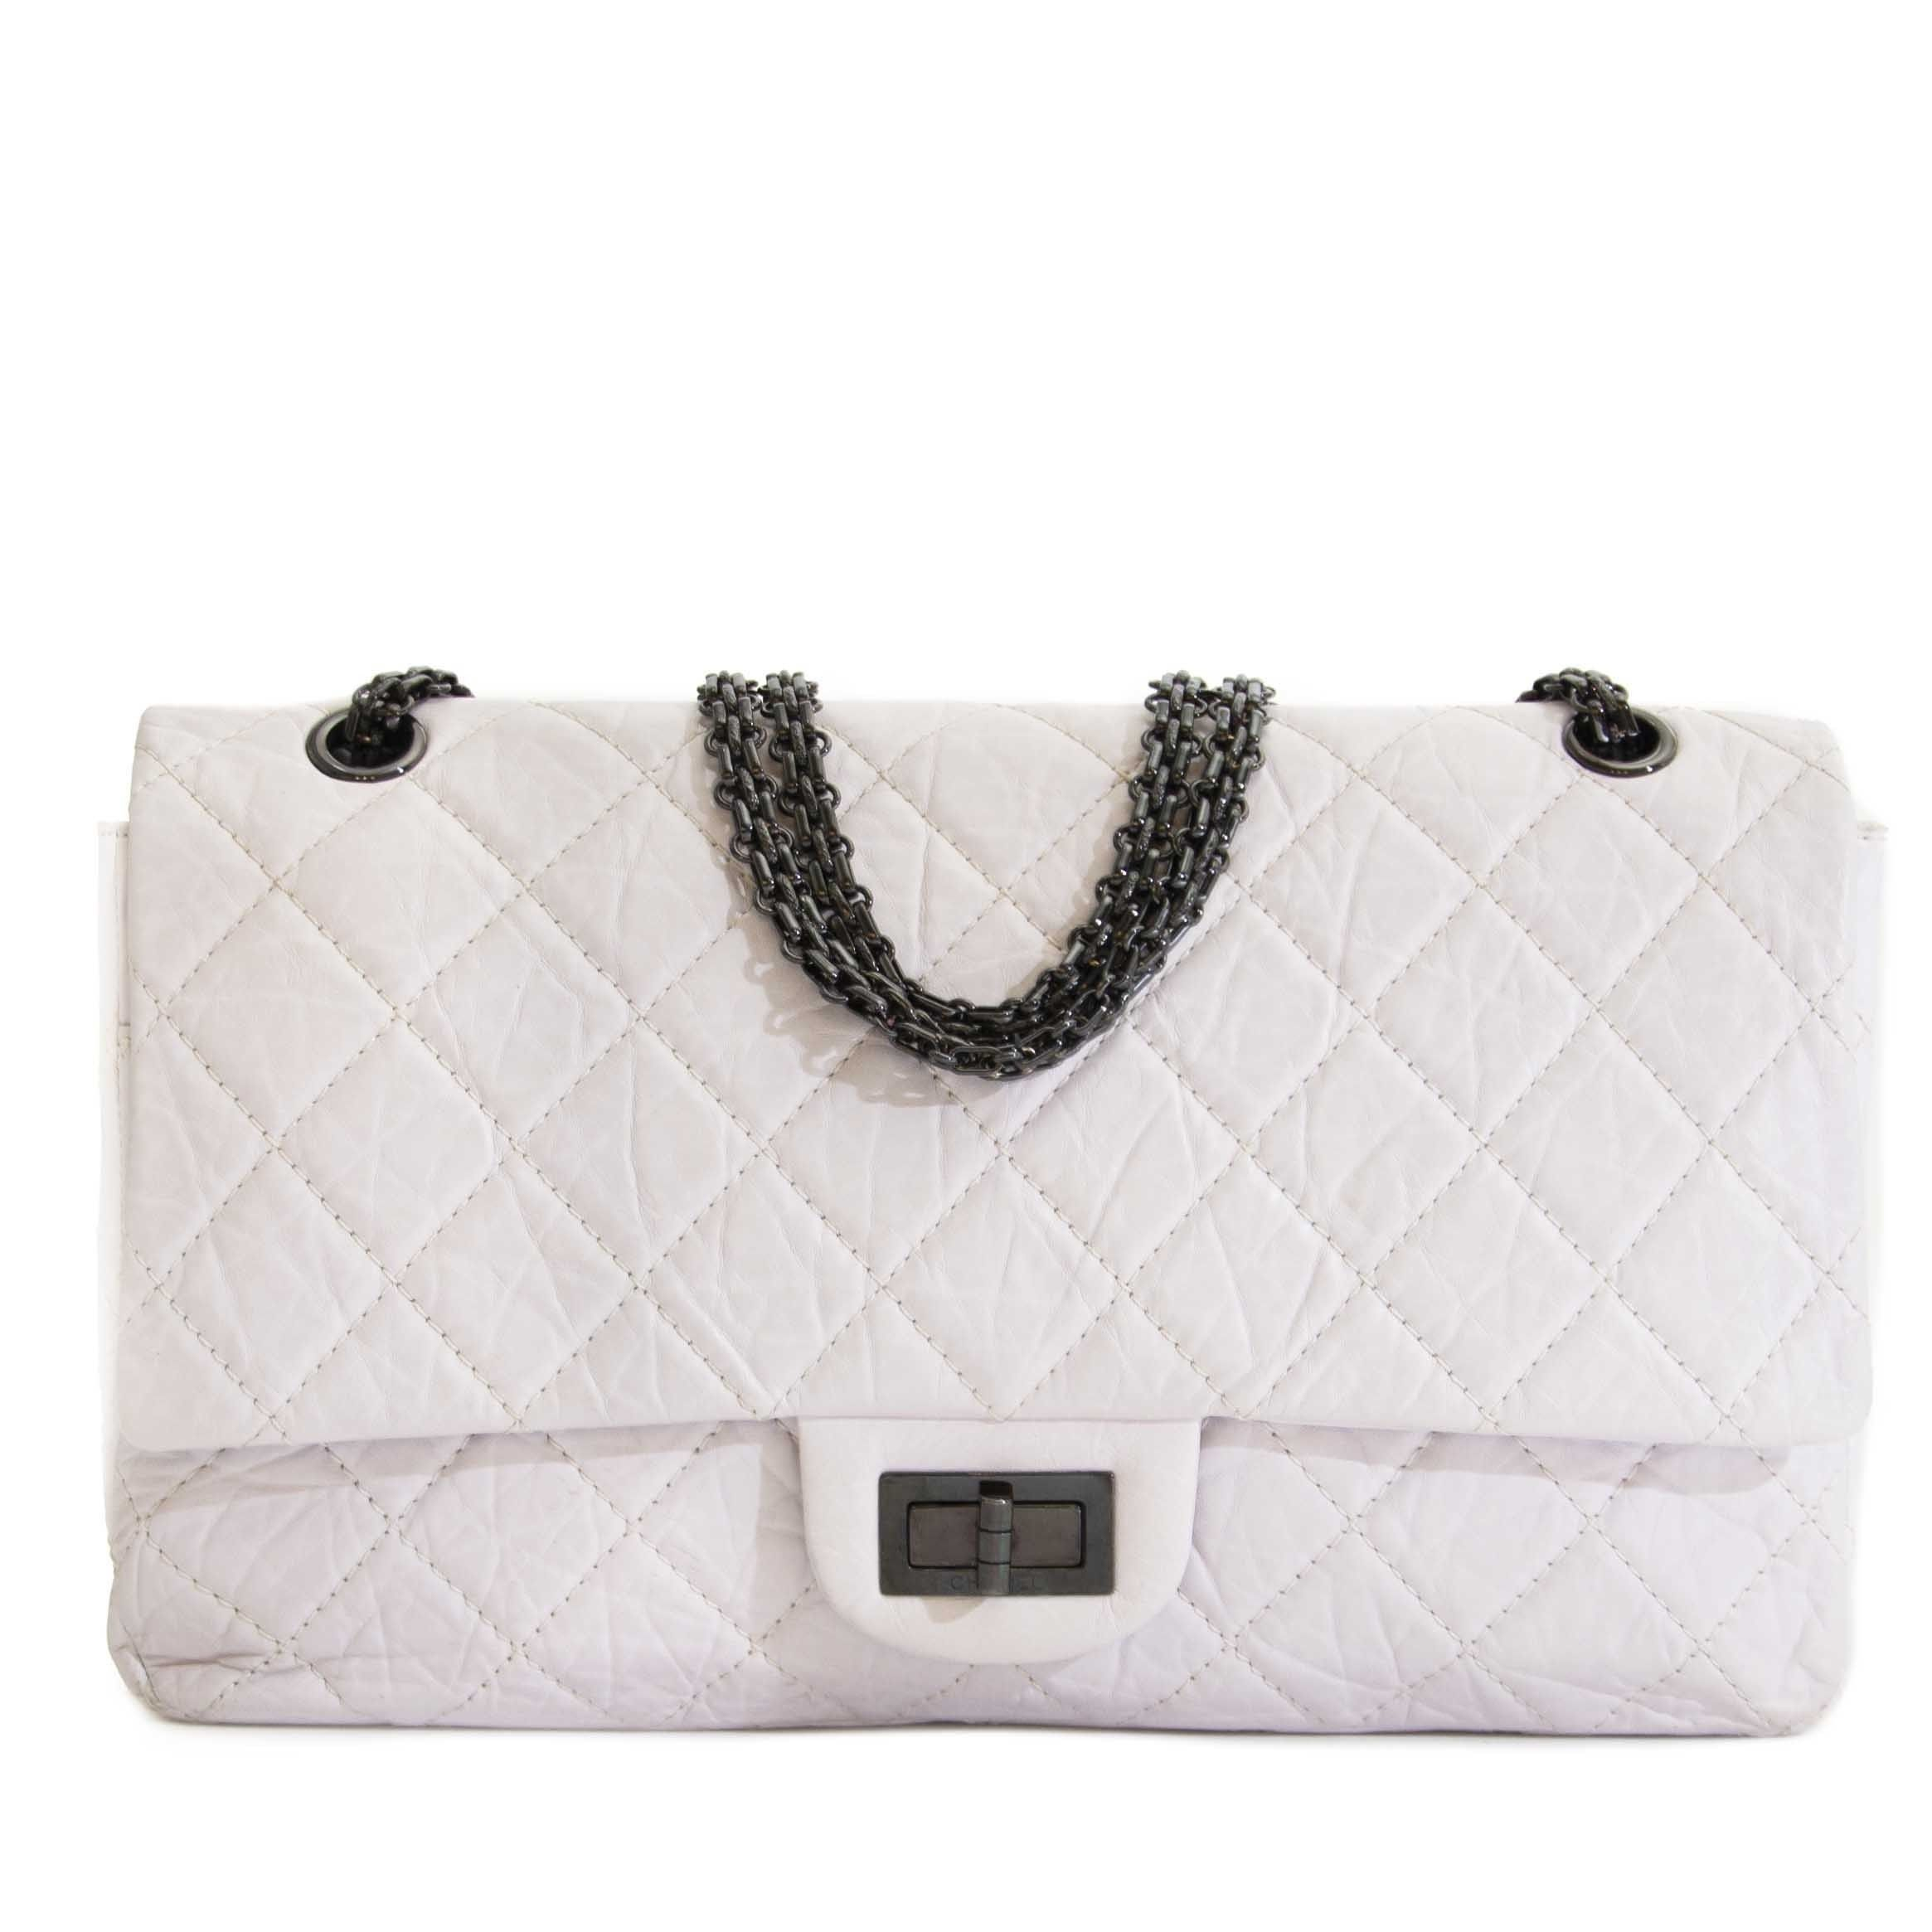 1973c94b Chanel White Aged Calfskin 2.55 Reissue 227 Flapbag | We LOV Chanel ...